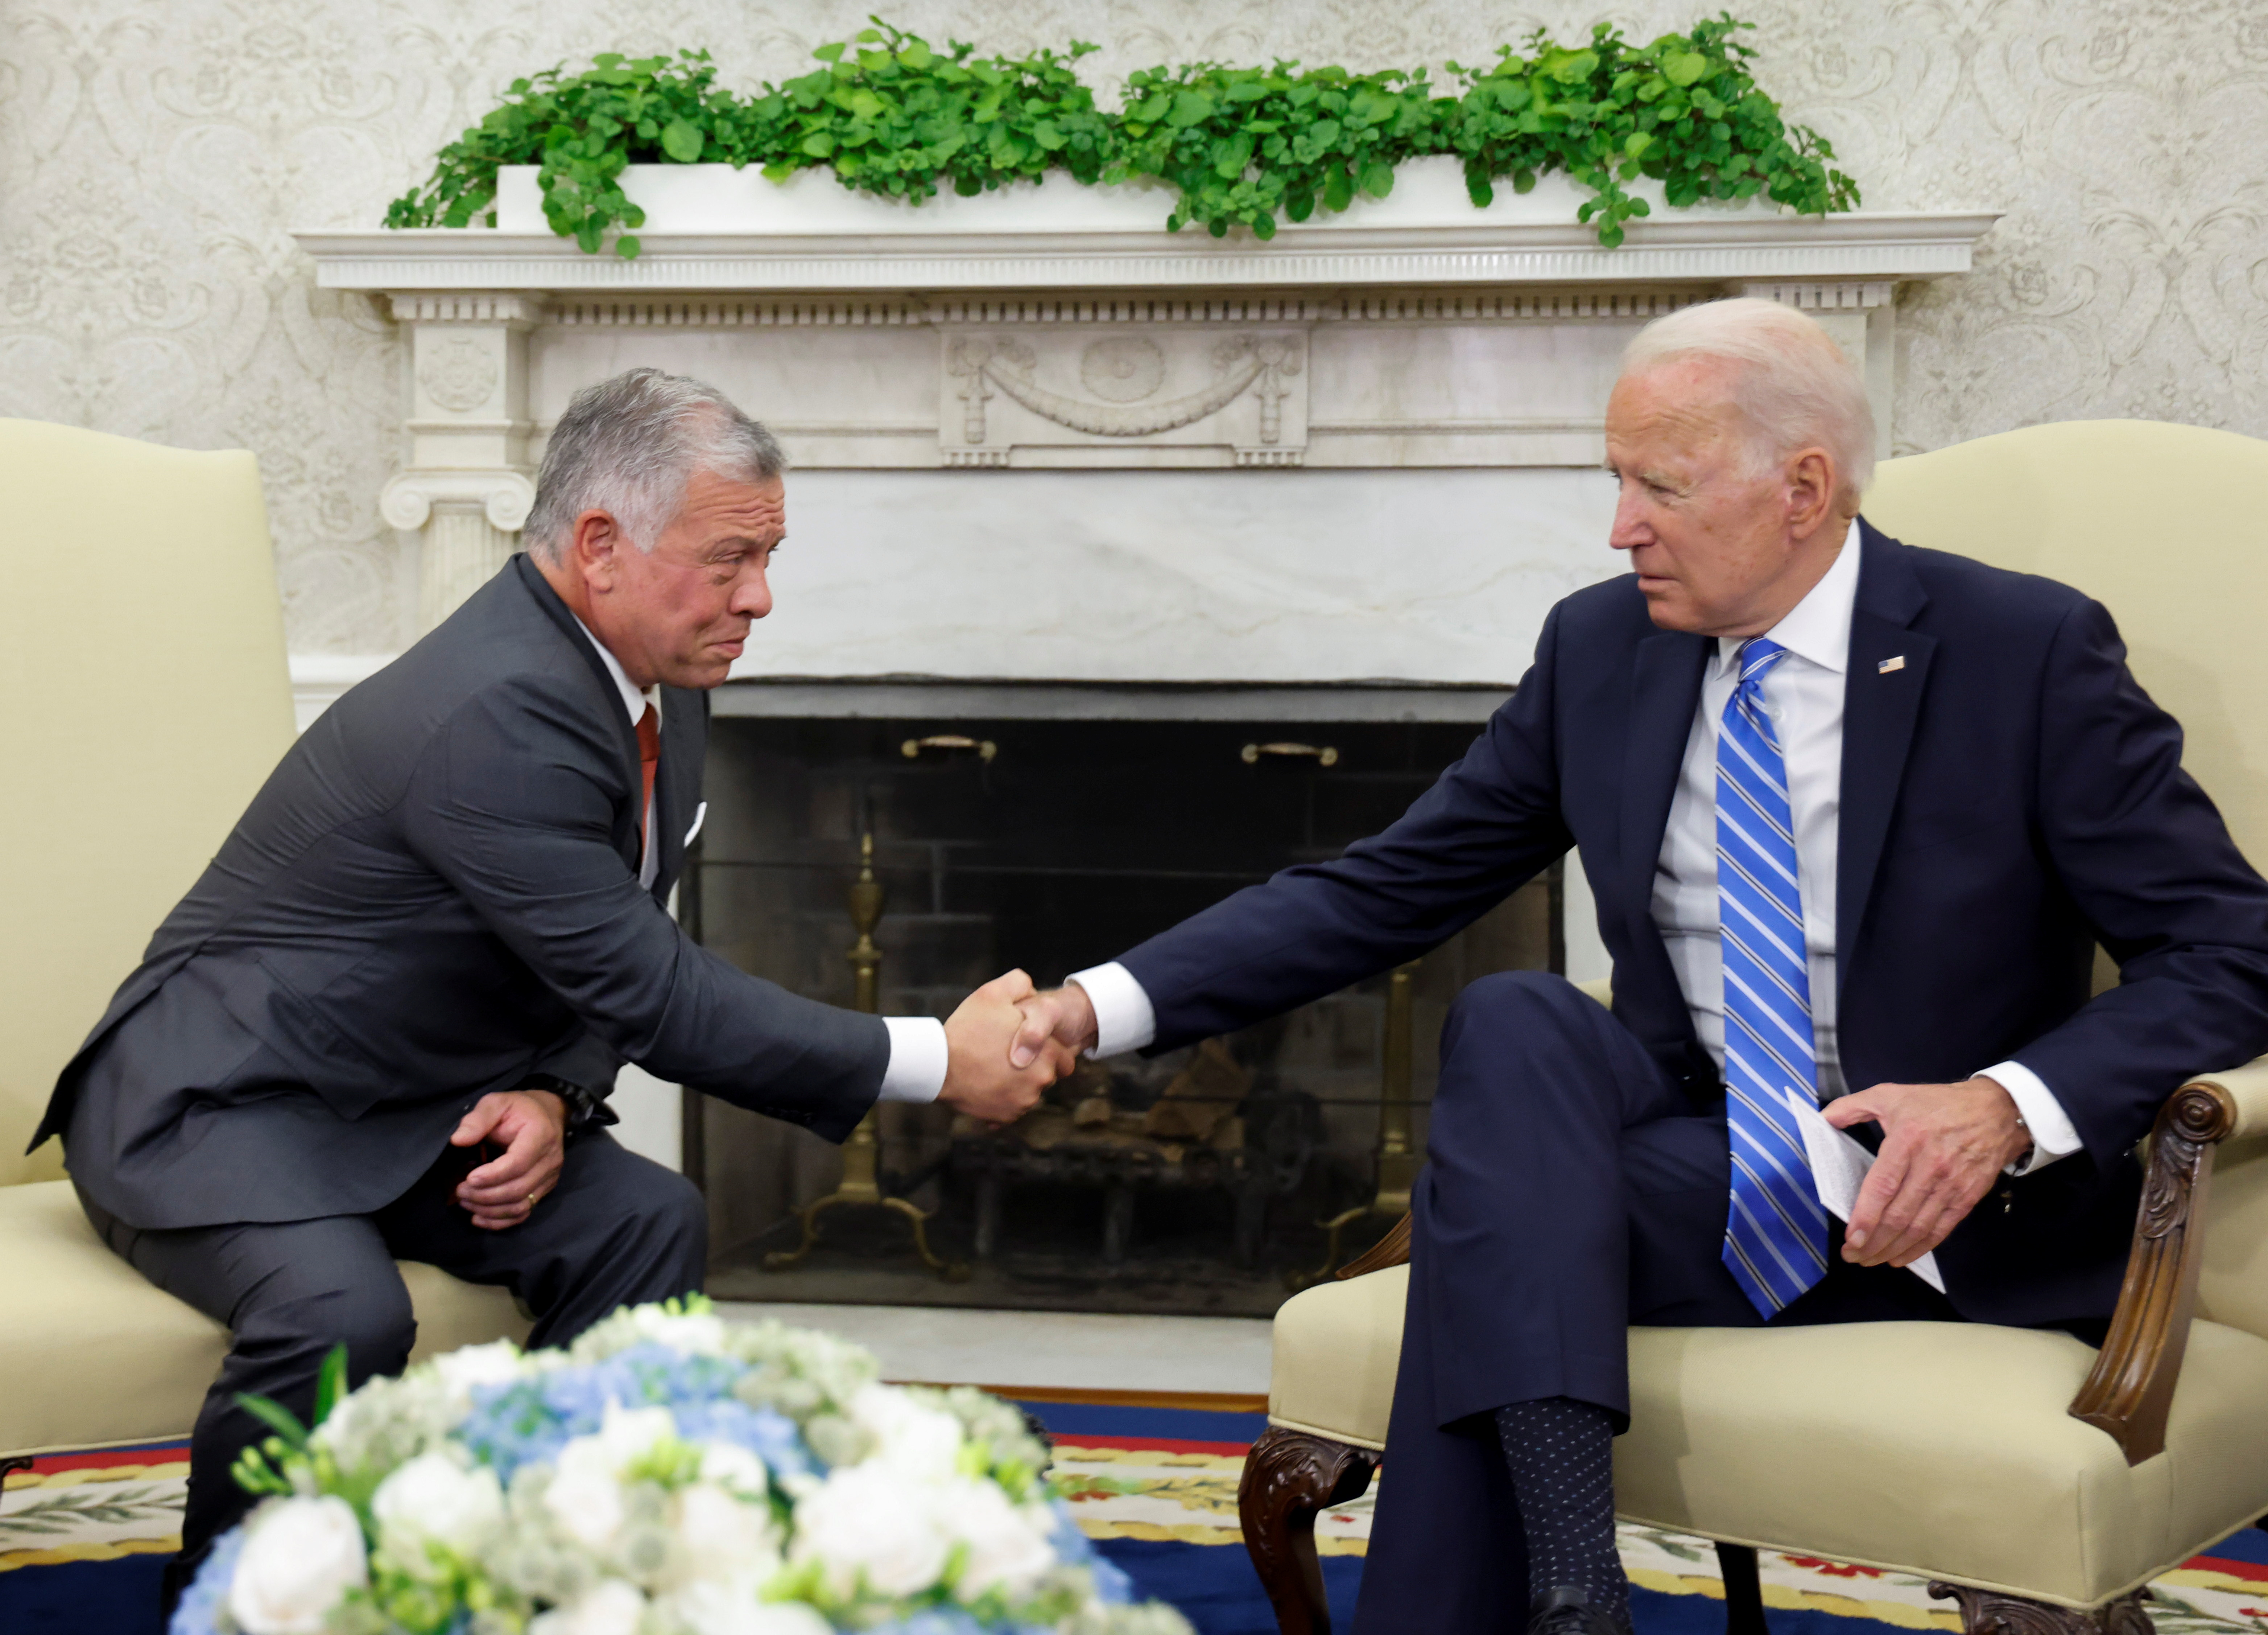 U.S. President Joe Biden shakes hands with Jordan's King Abdullah II in the Oval Office at the White House in Washington, U.S. July 19, 2021. REUTERS/Jonathan Ernst